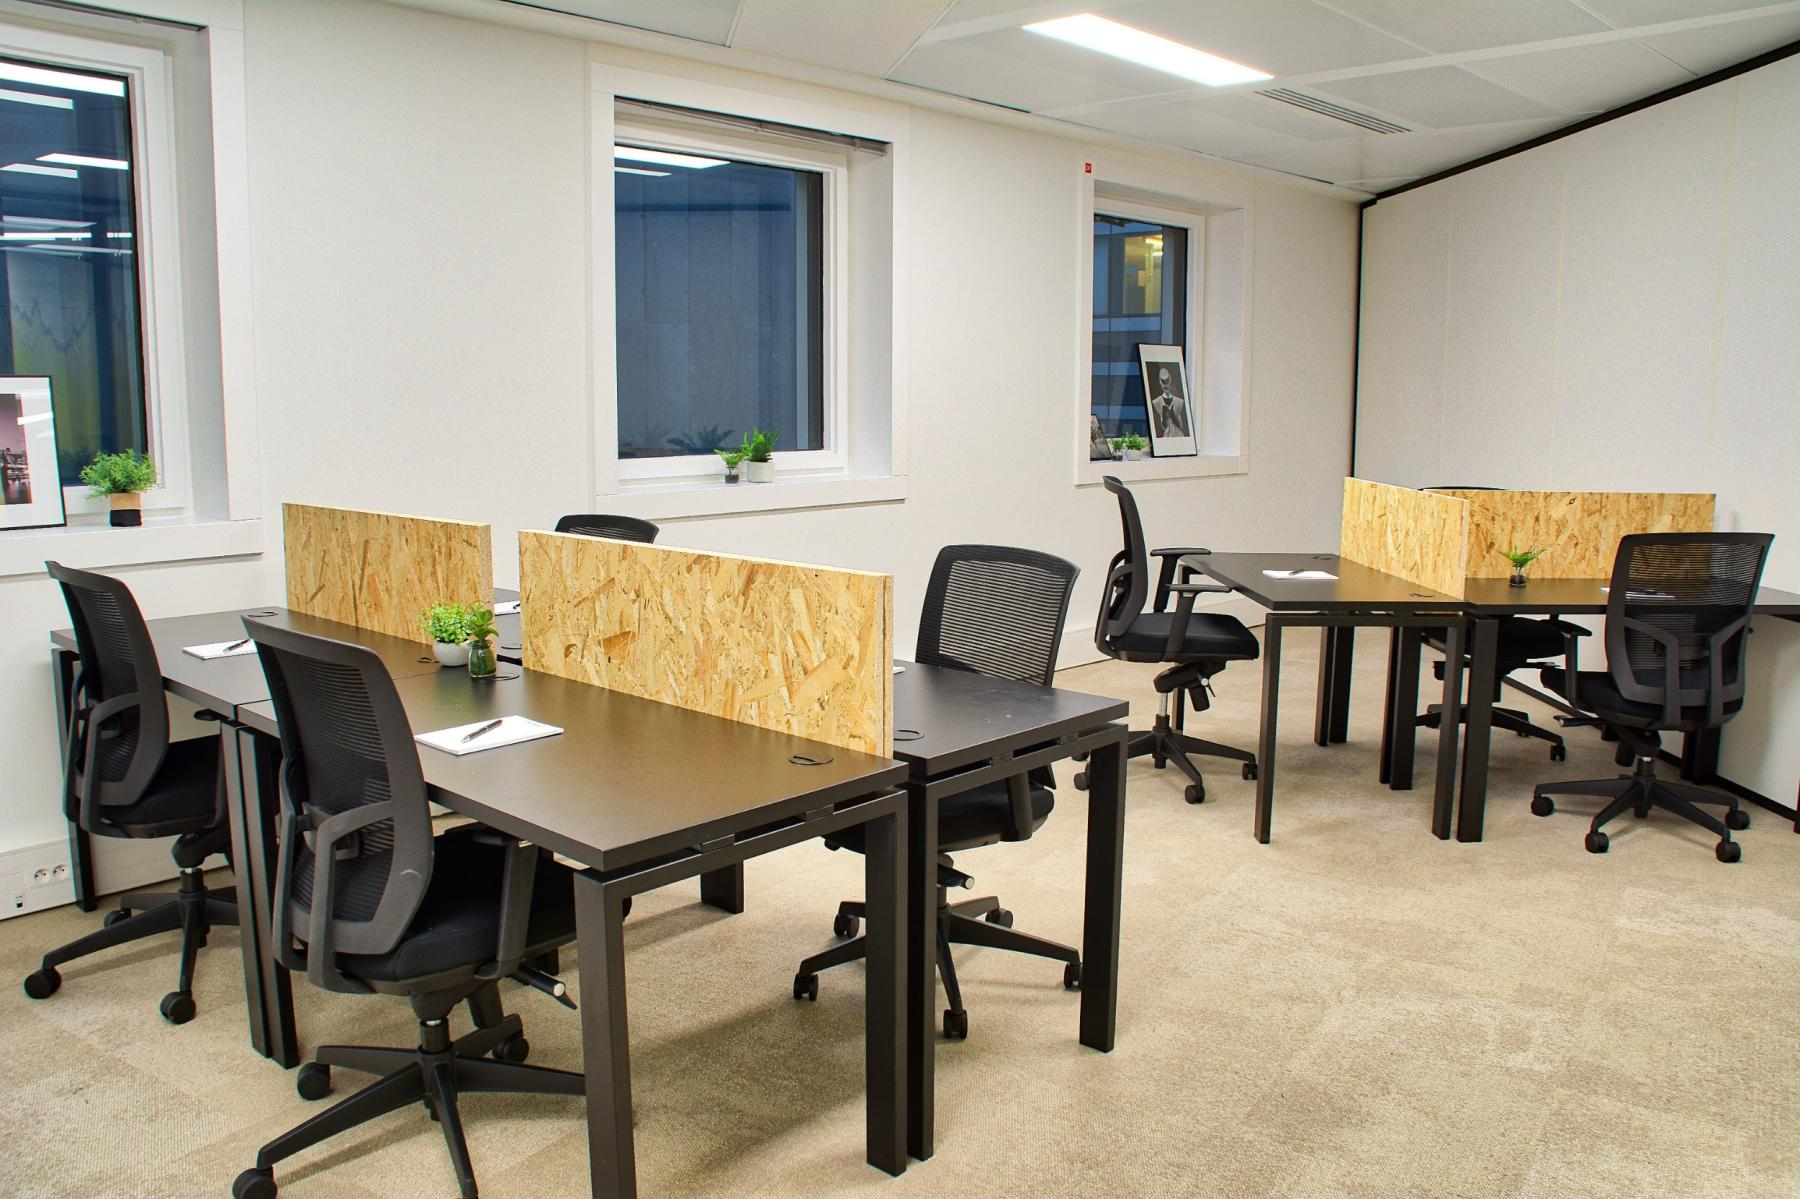 Desks to share with separation screens to work in serenity during Valmy